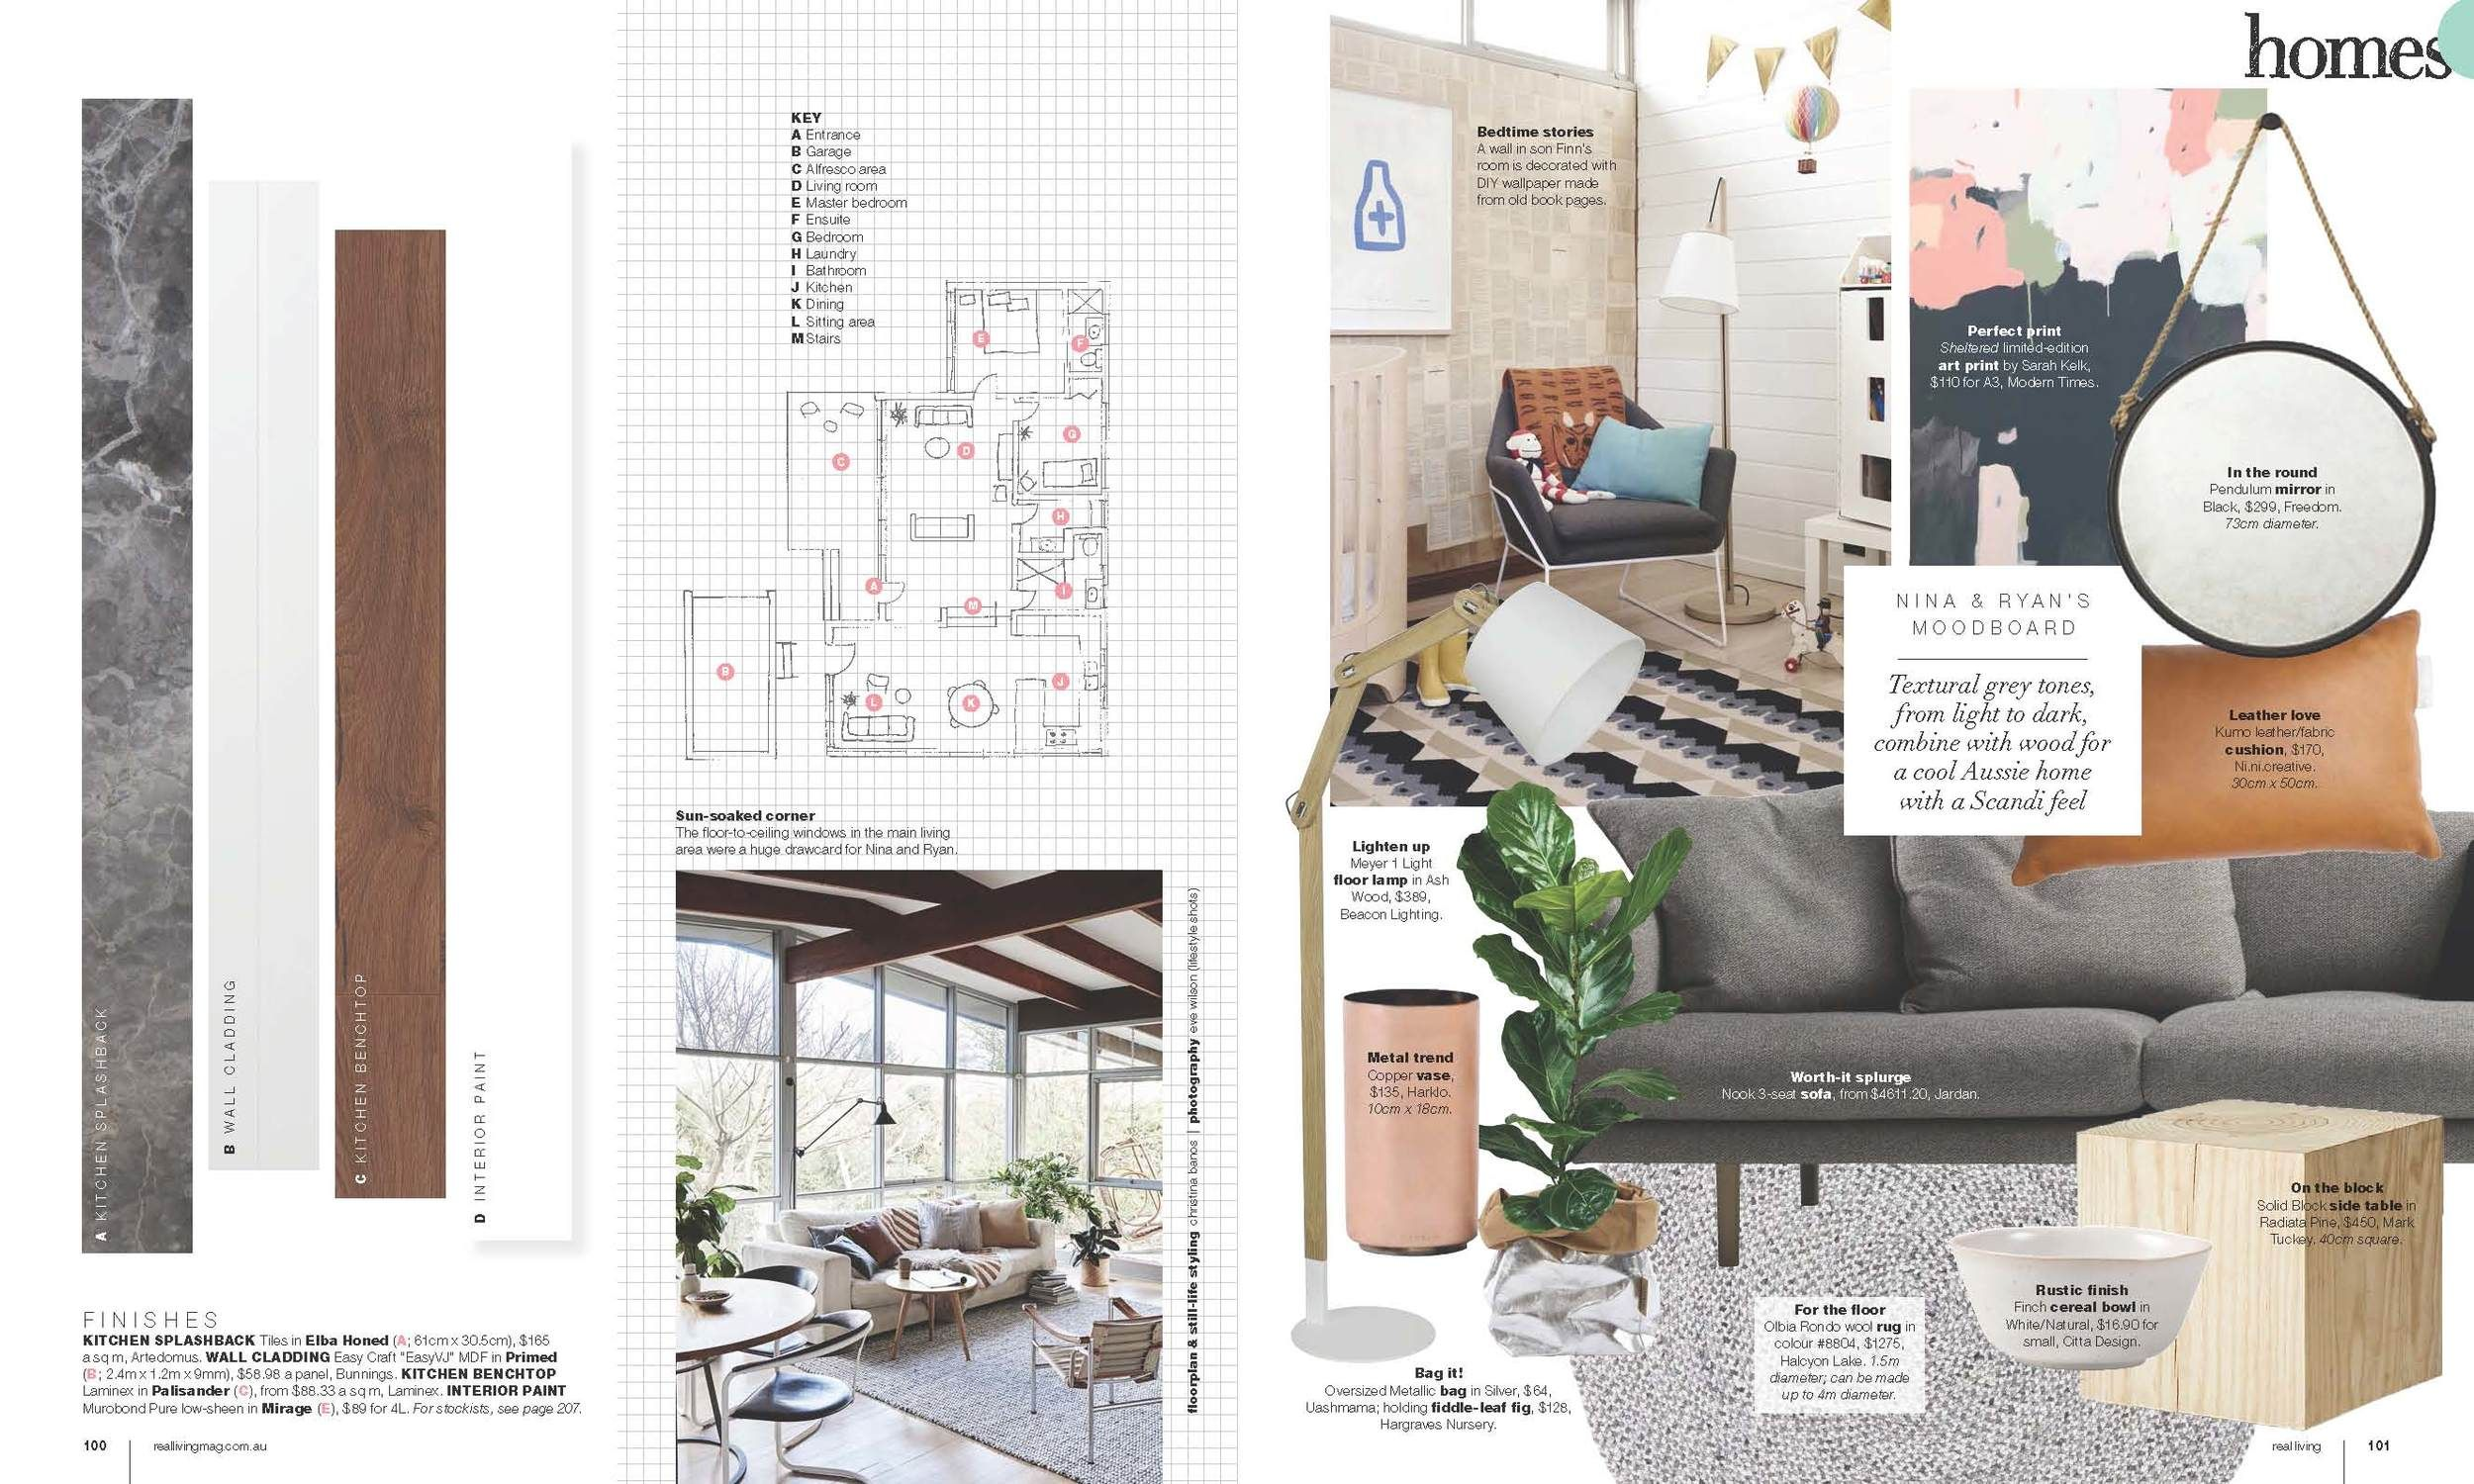 Mt Martha Home features in Real Living Magazine | NI NI